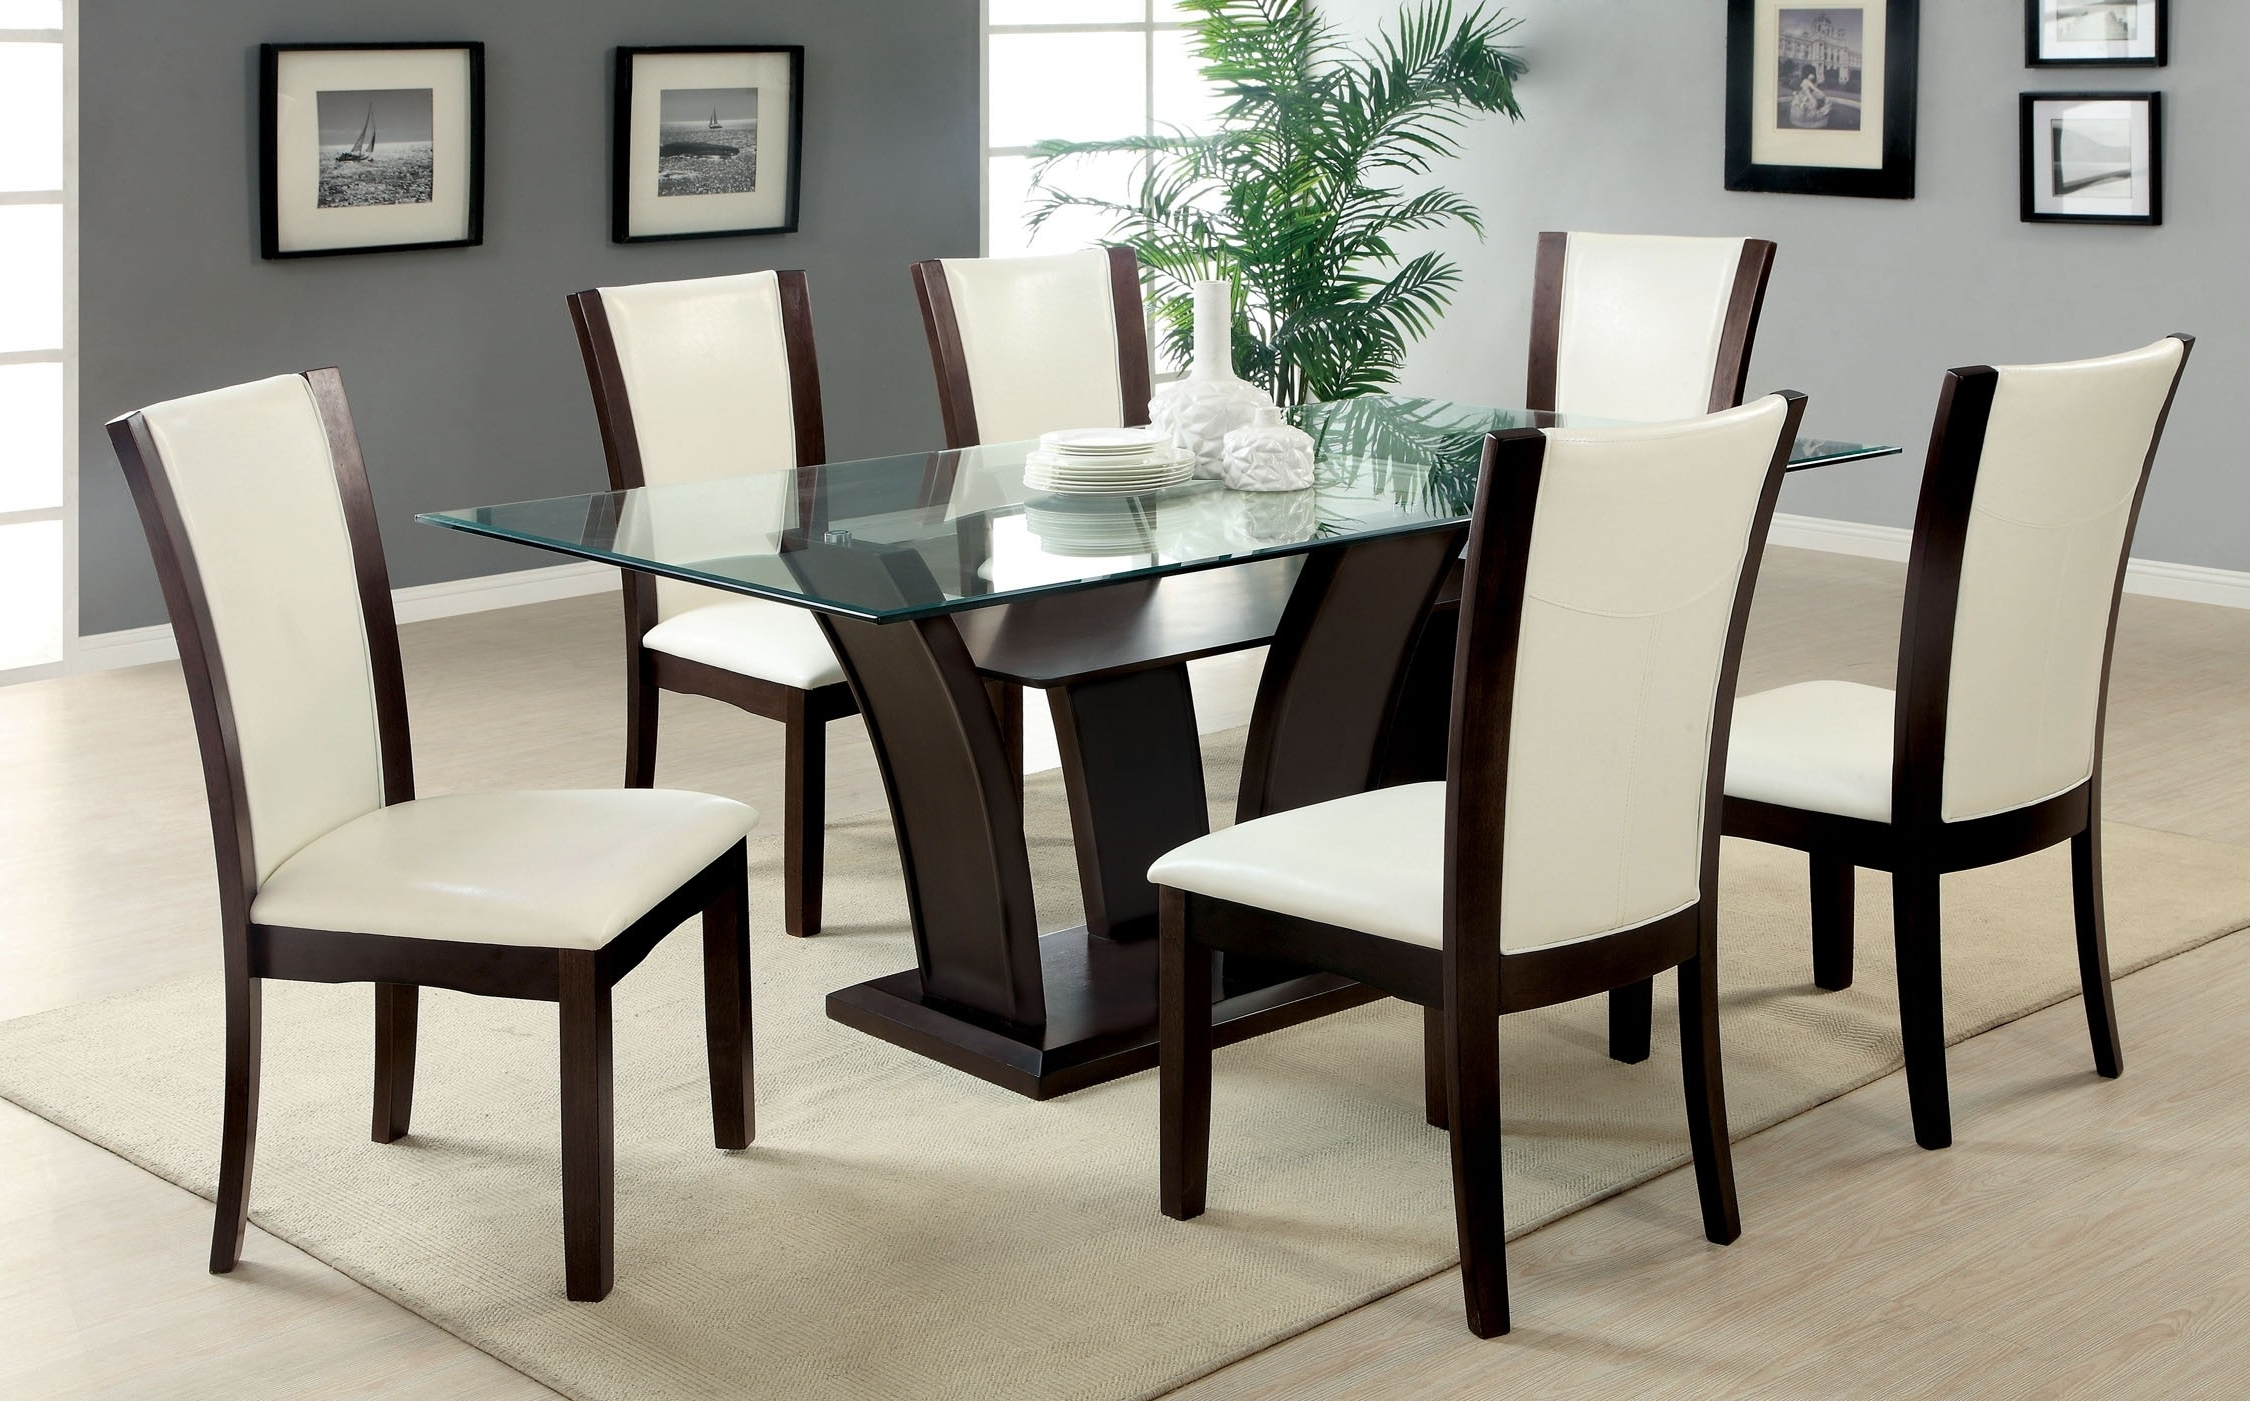 Trendy 6 Seater Glass Dining Table Sets • Table Setting Ideas Inside Cora 7 Piece Dining Sets (View 23 of 25)